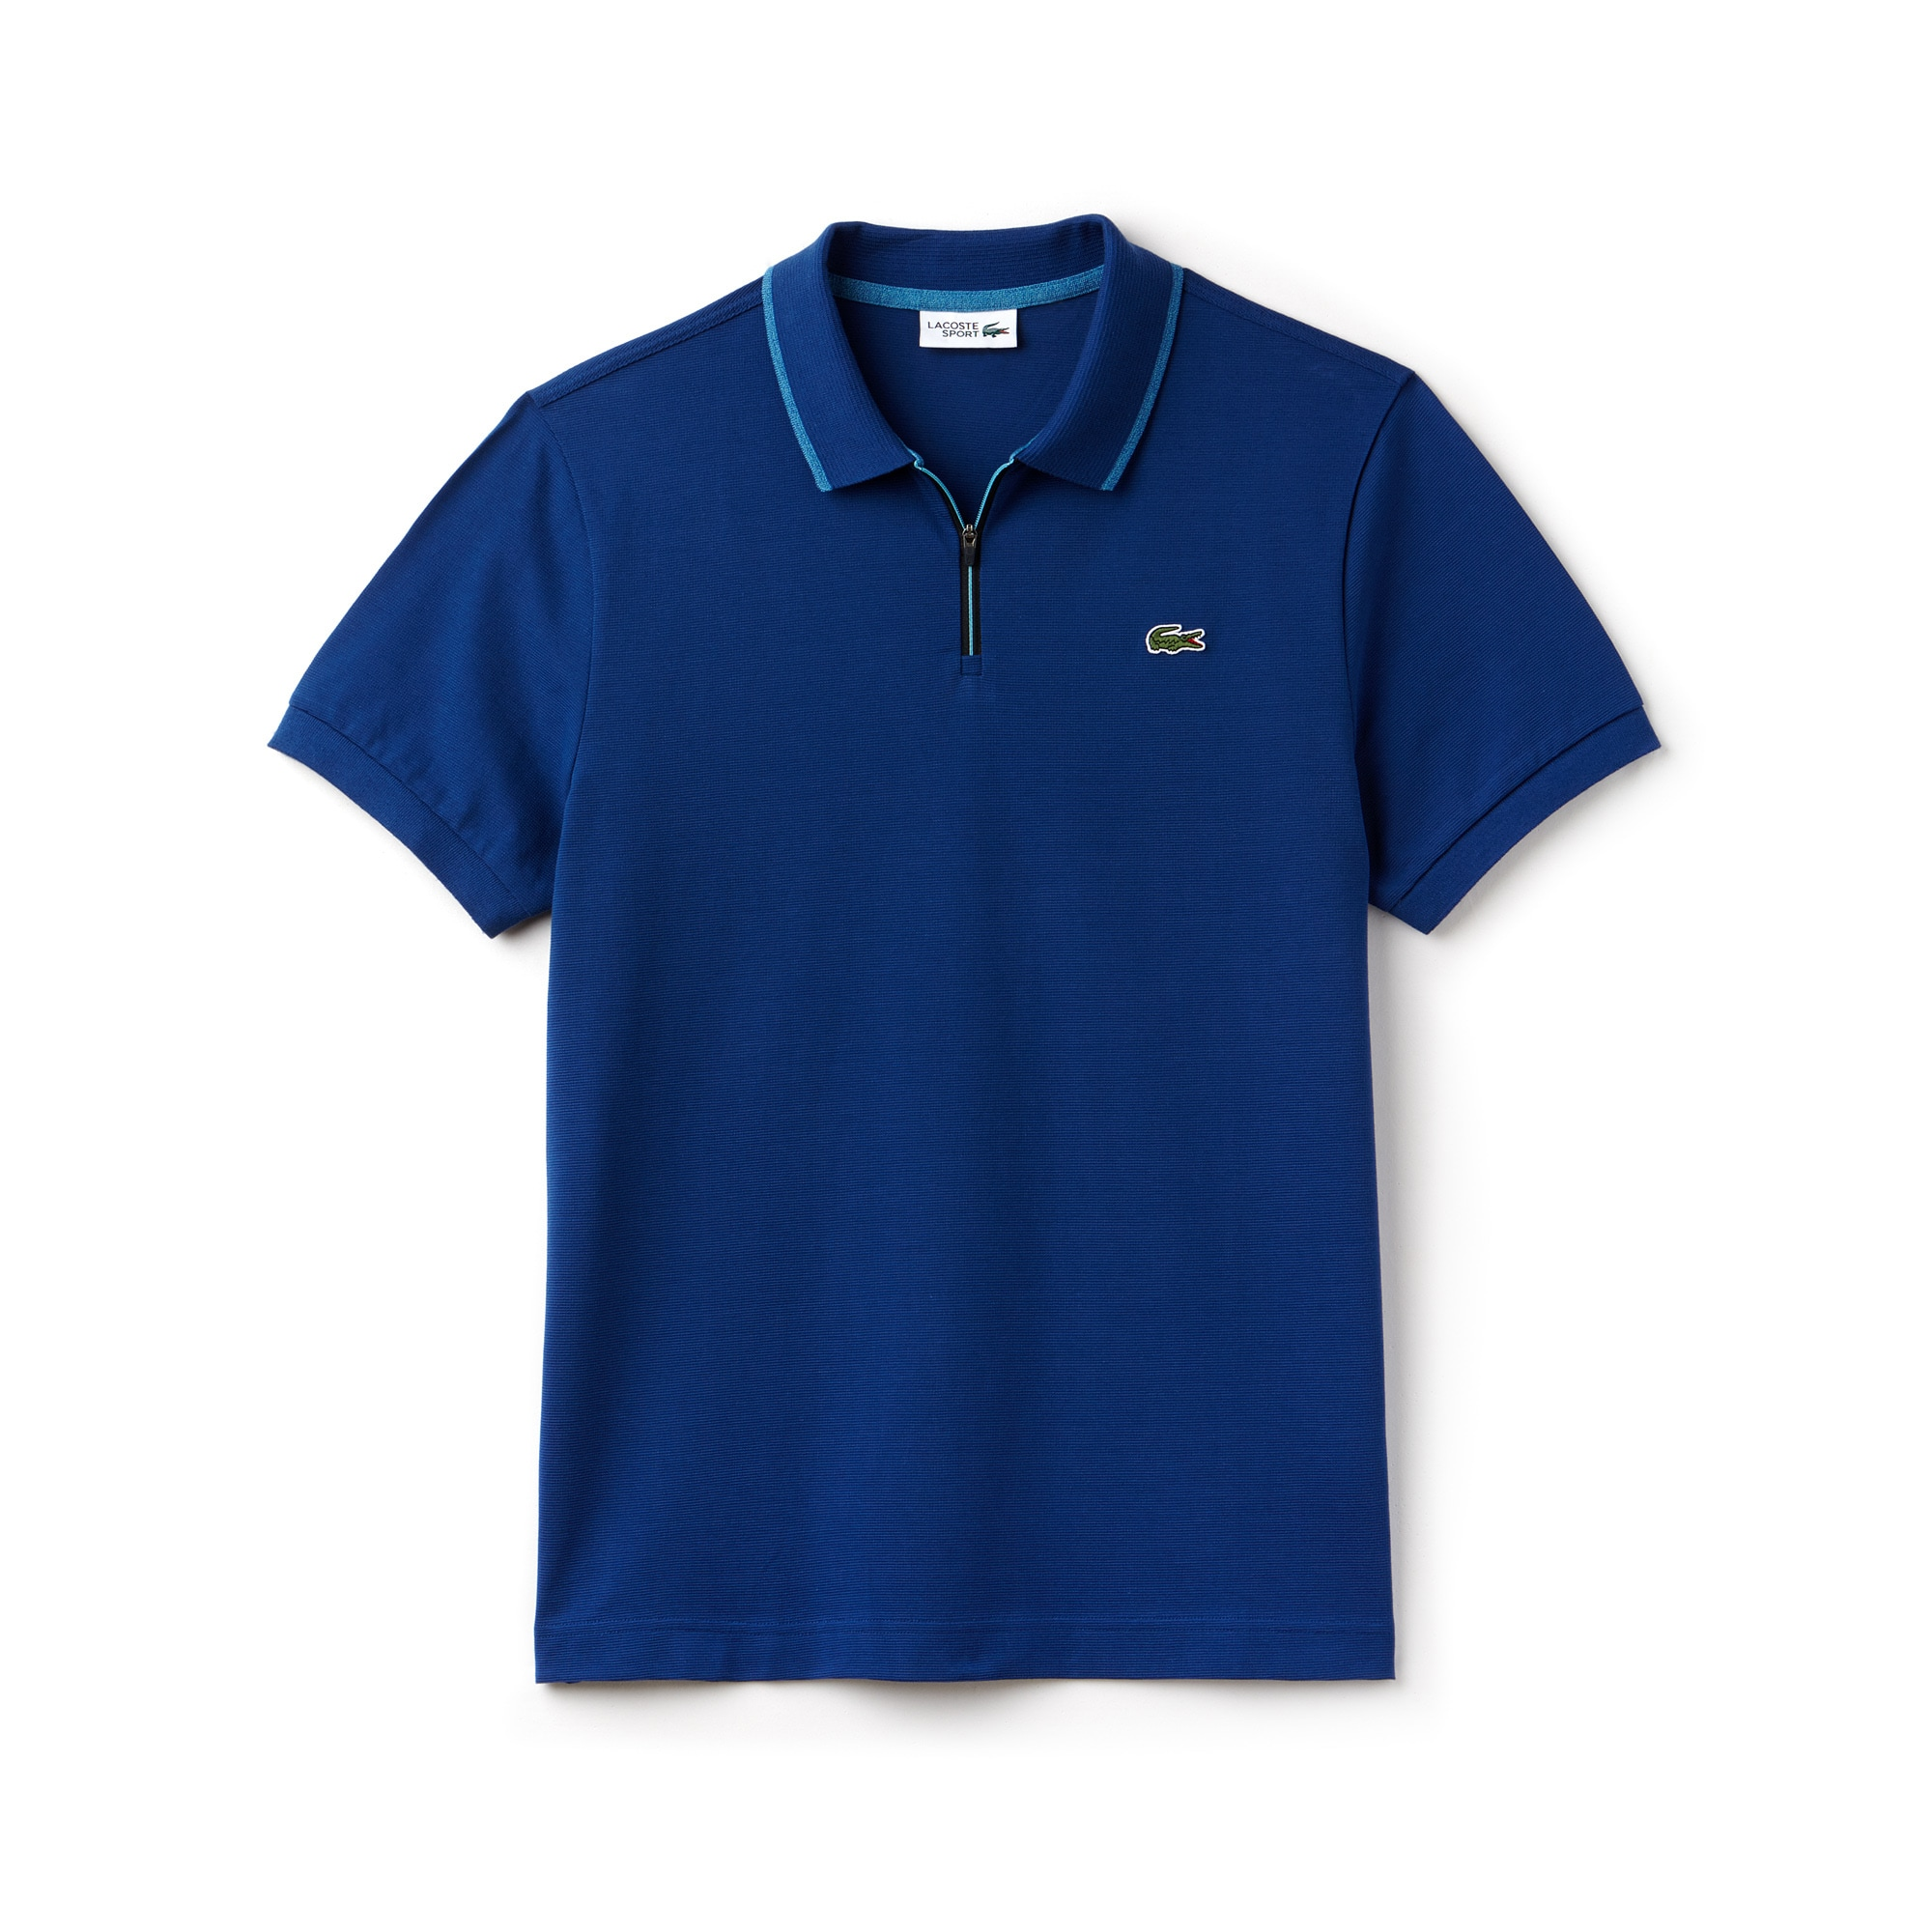 Men's Lacoste SPORT Contrast Accent Ultra-Light Cotton Tennis Polo Shirt